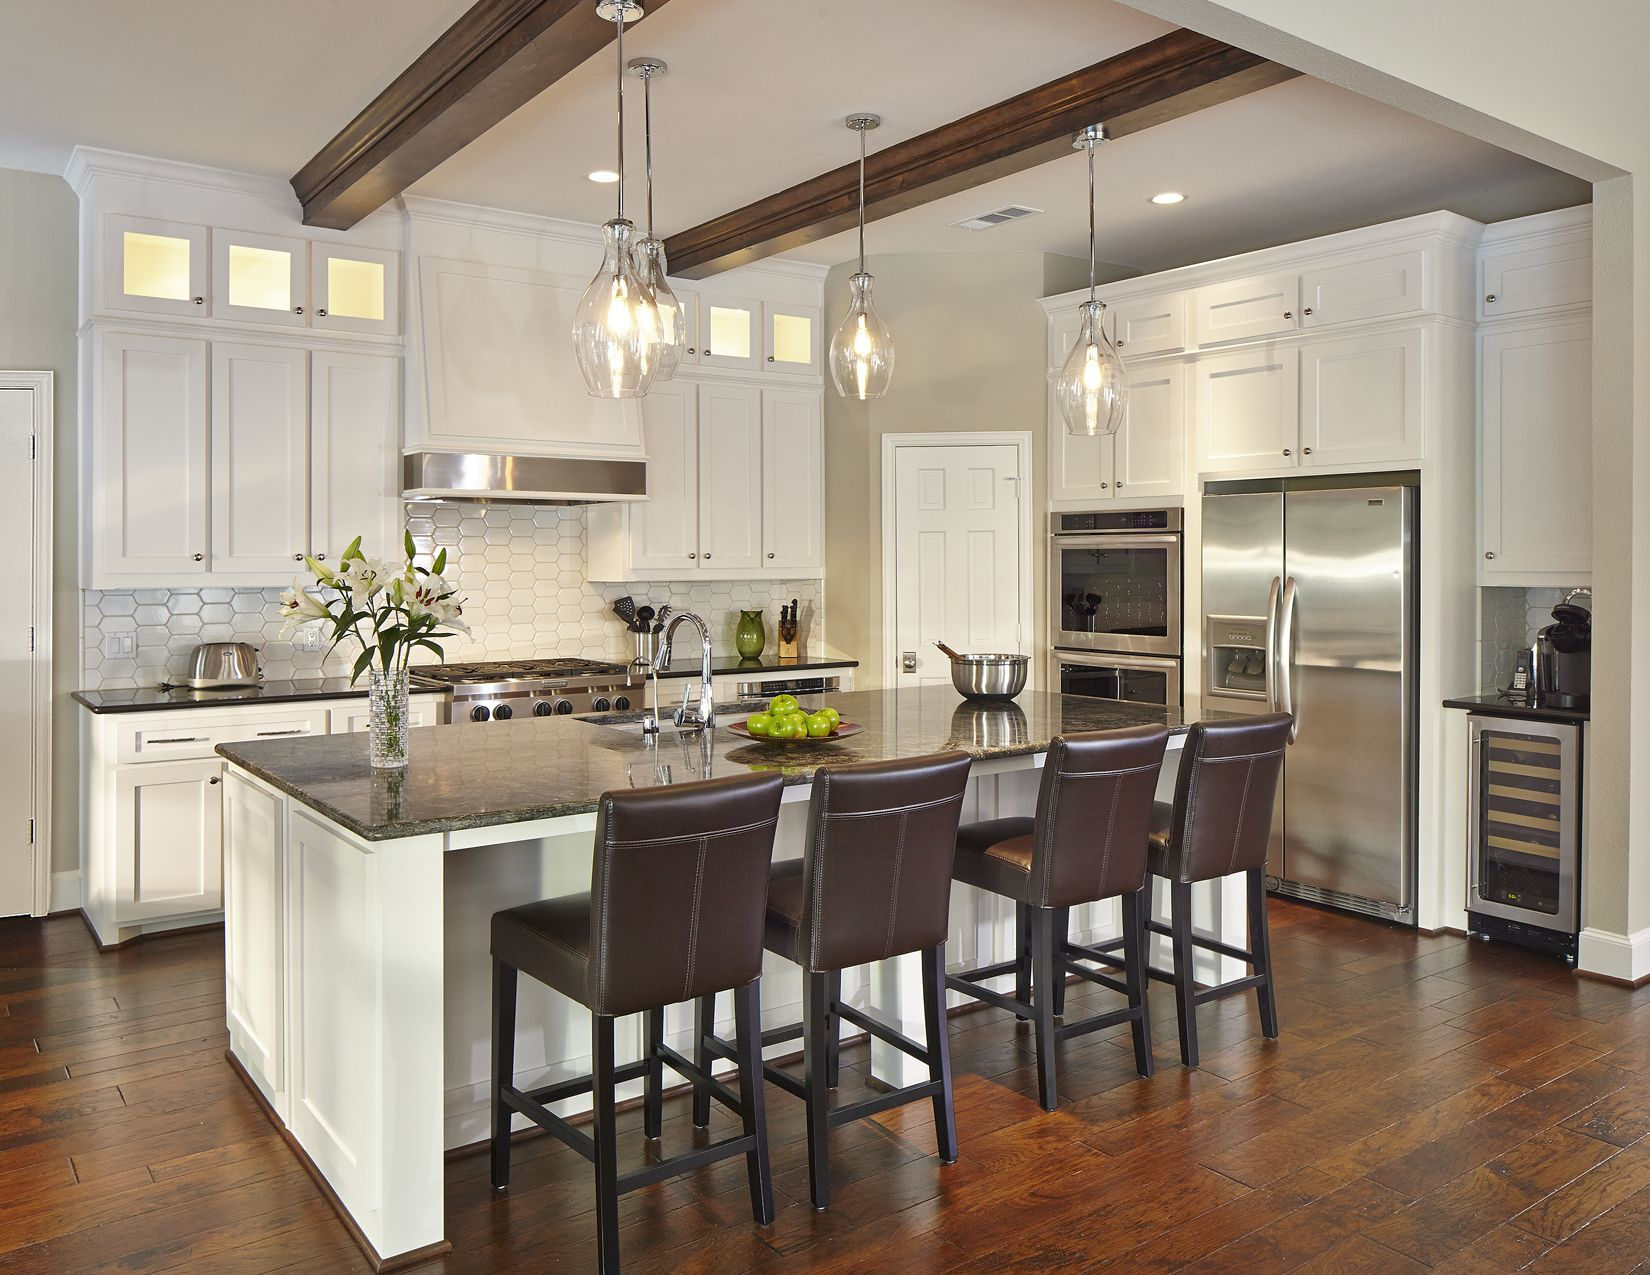 Dallas Kitchen Design Amazing Usi Remodeling  2014 Nari Dallas Contractor Of The Year  Kitchen Design Decoration